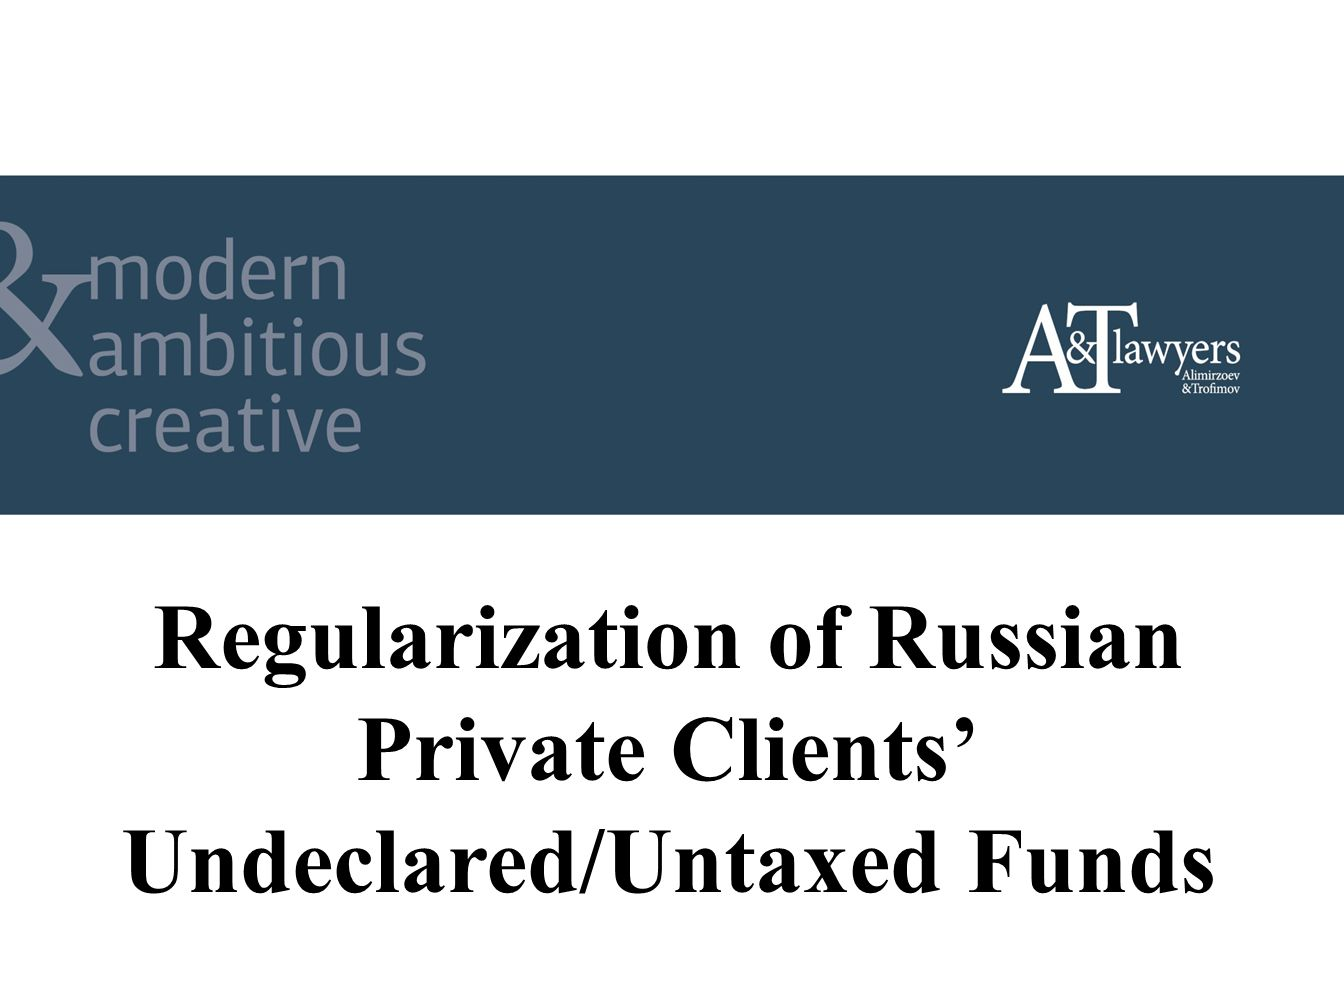 Regularization of Russian Private Clients Undeclared/Untaxed Funds